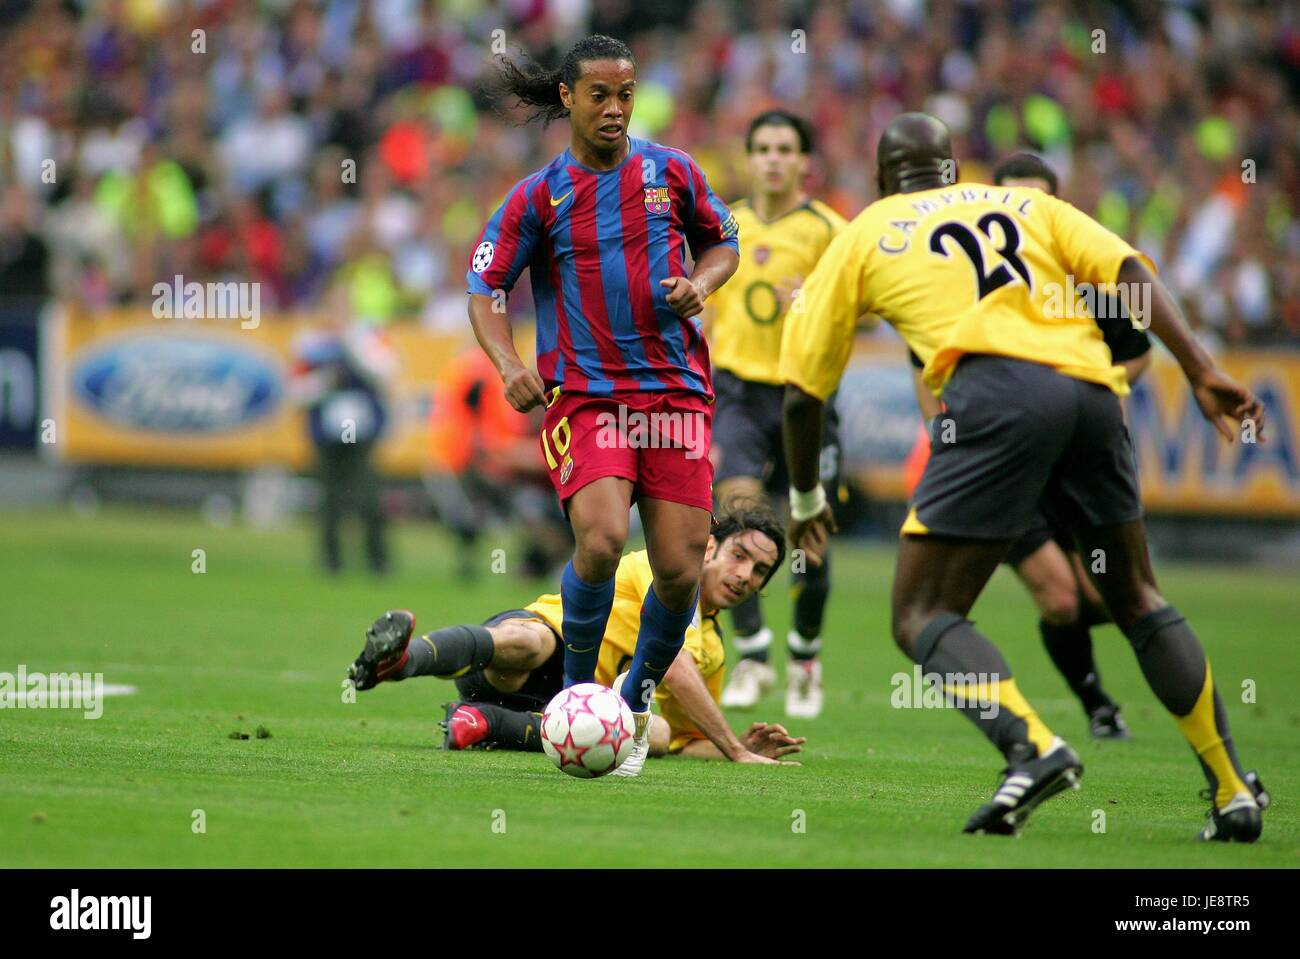 PIRES RONALDINHO & CAMPBELL BARCELONA V ARSENAL STADE DE FRANCE PARIS FRANCE 17 May 2006 - Stock Image